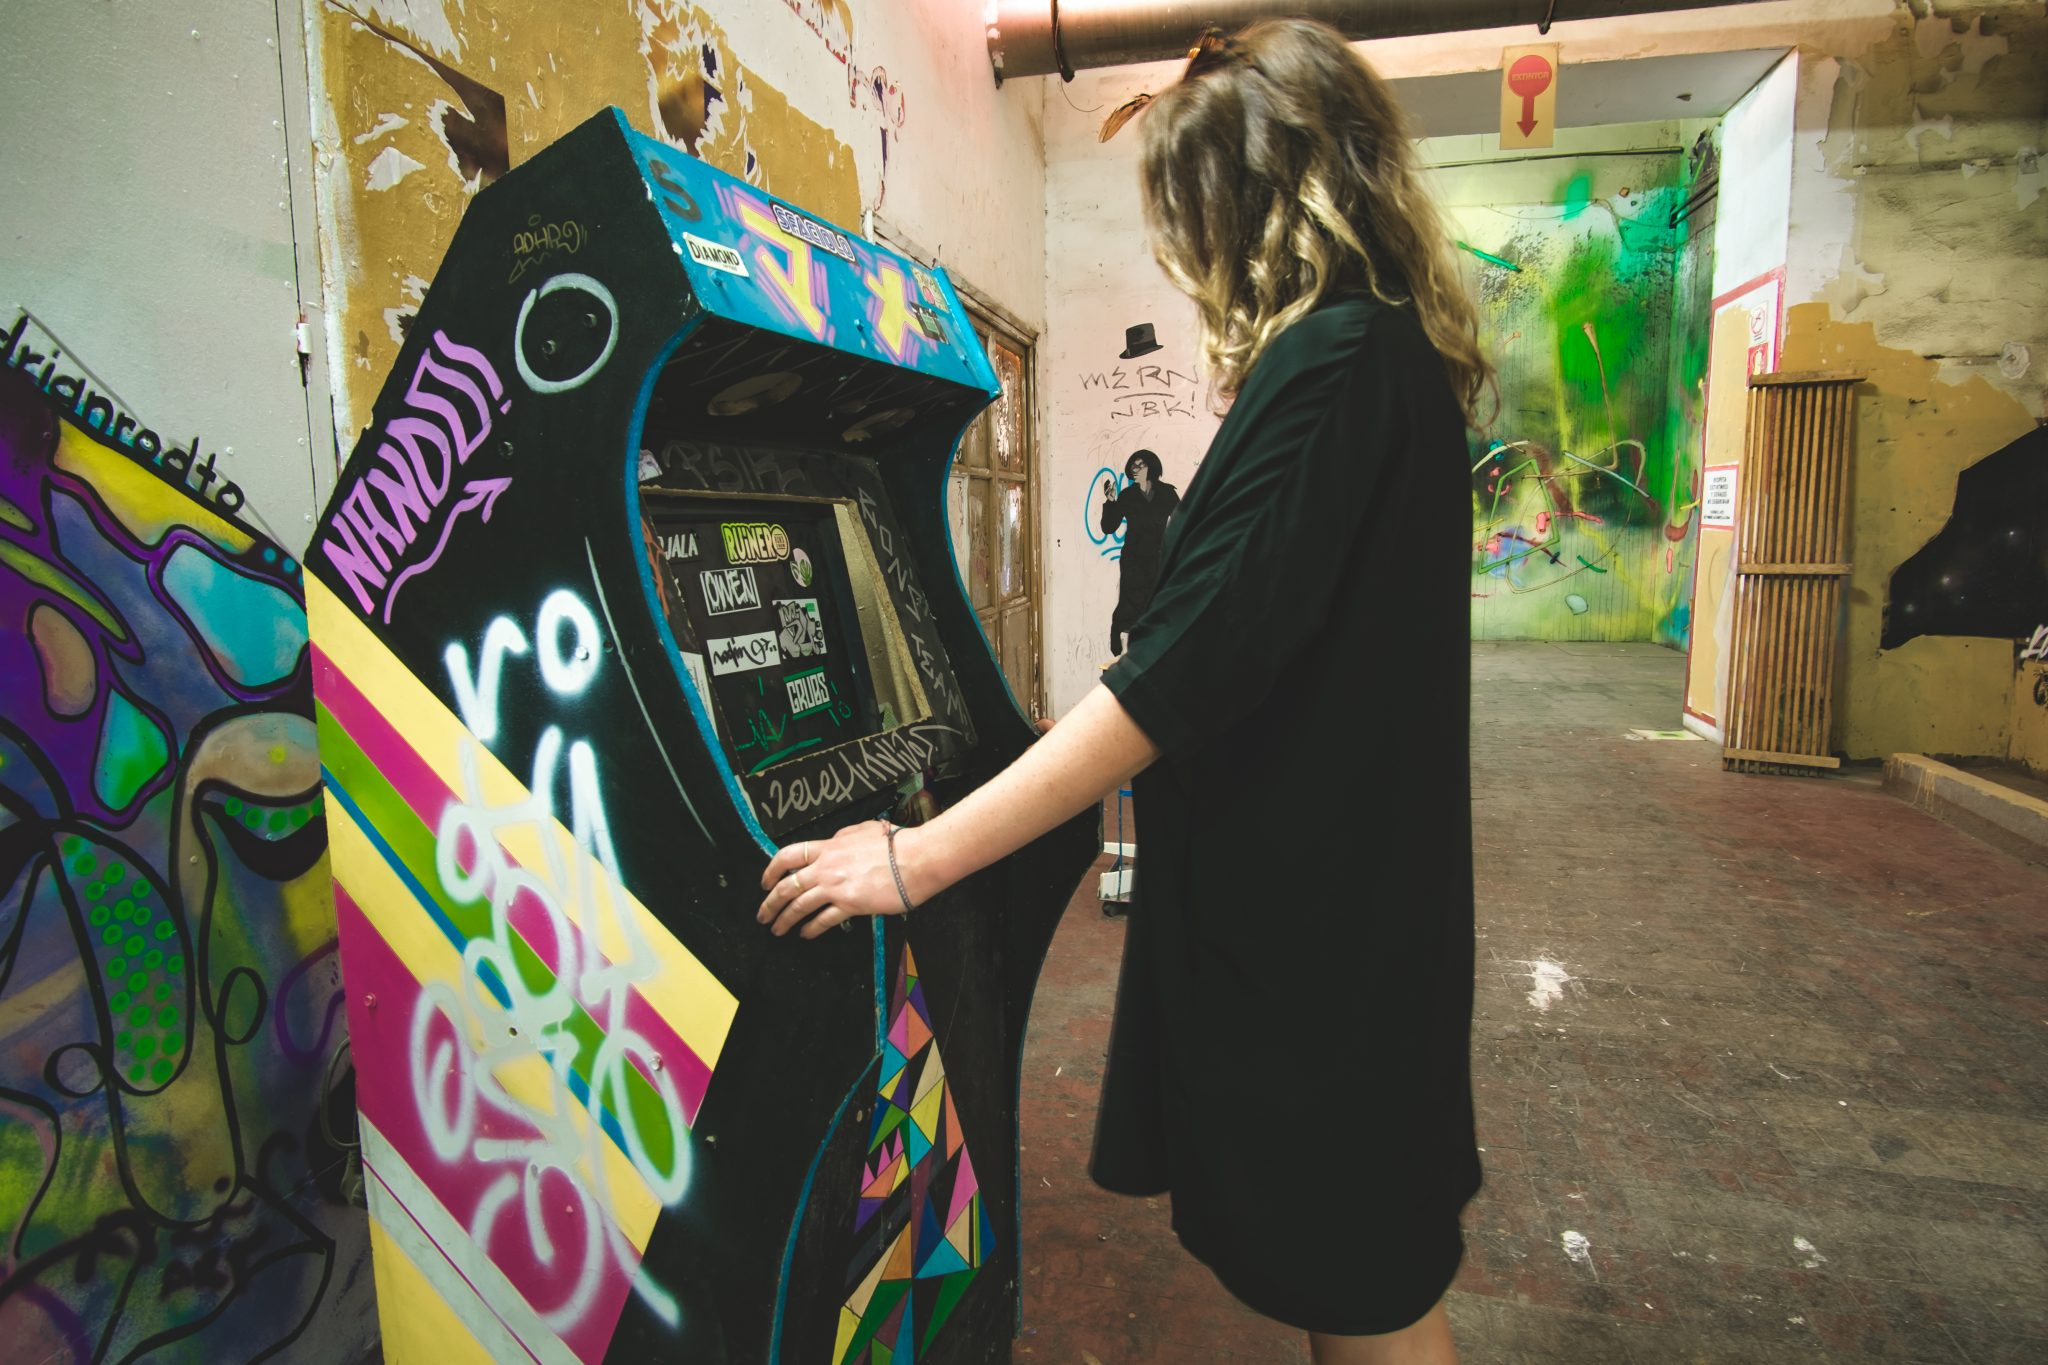 Girl playing arcade game in the tabacalera of madrid photo by Jo Kassis